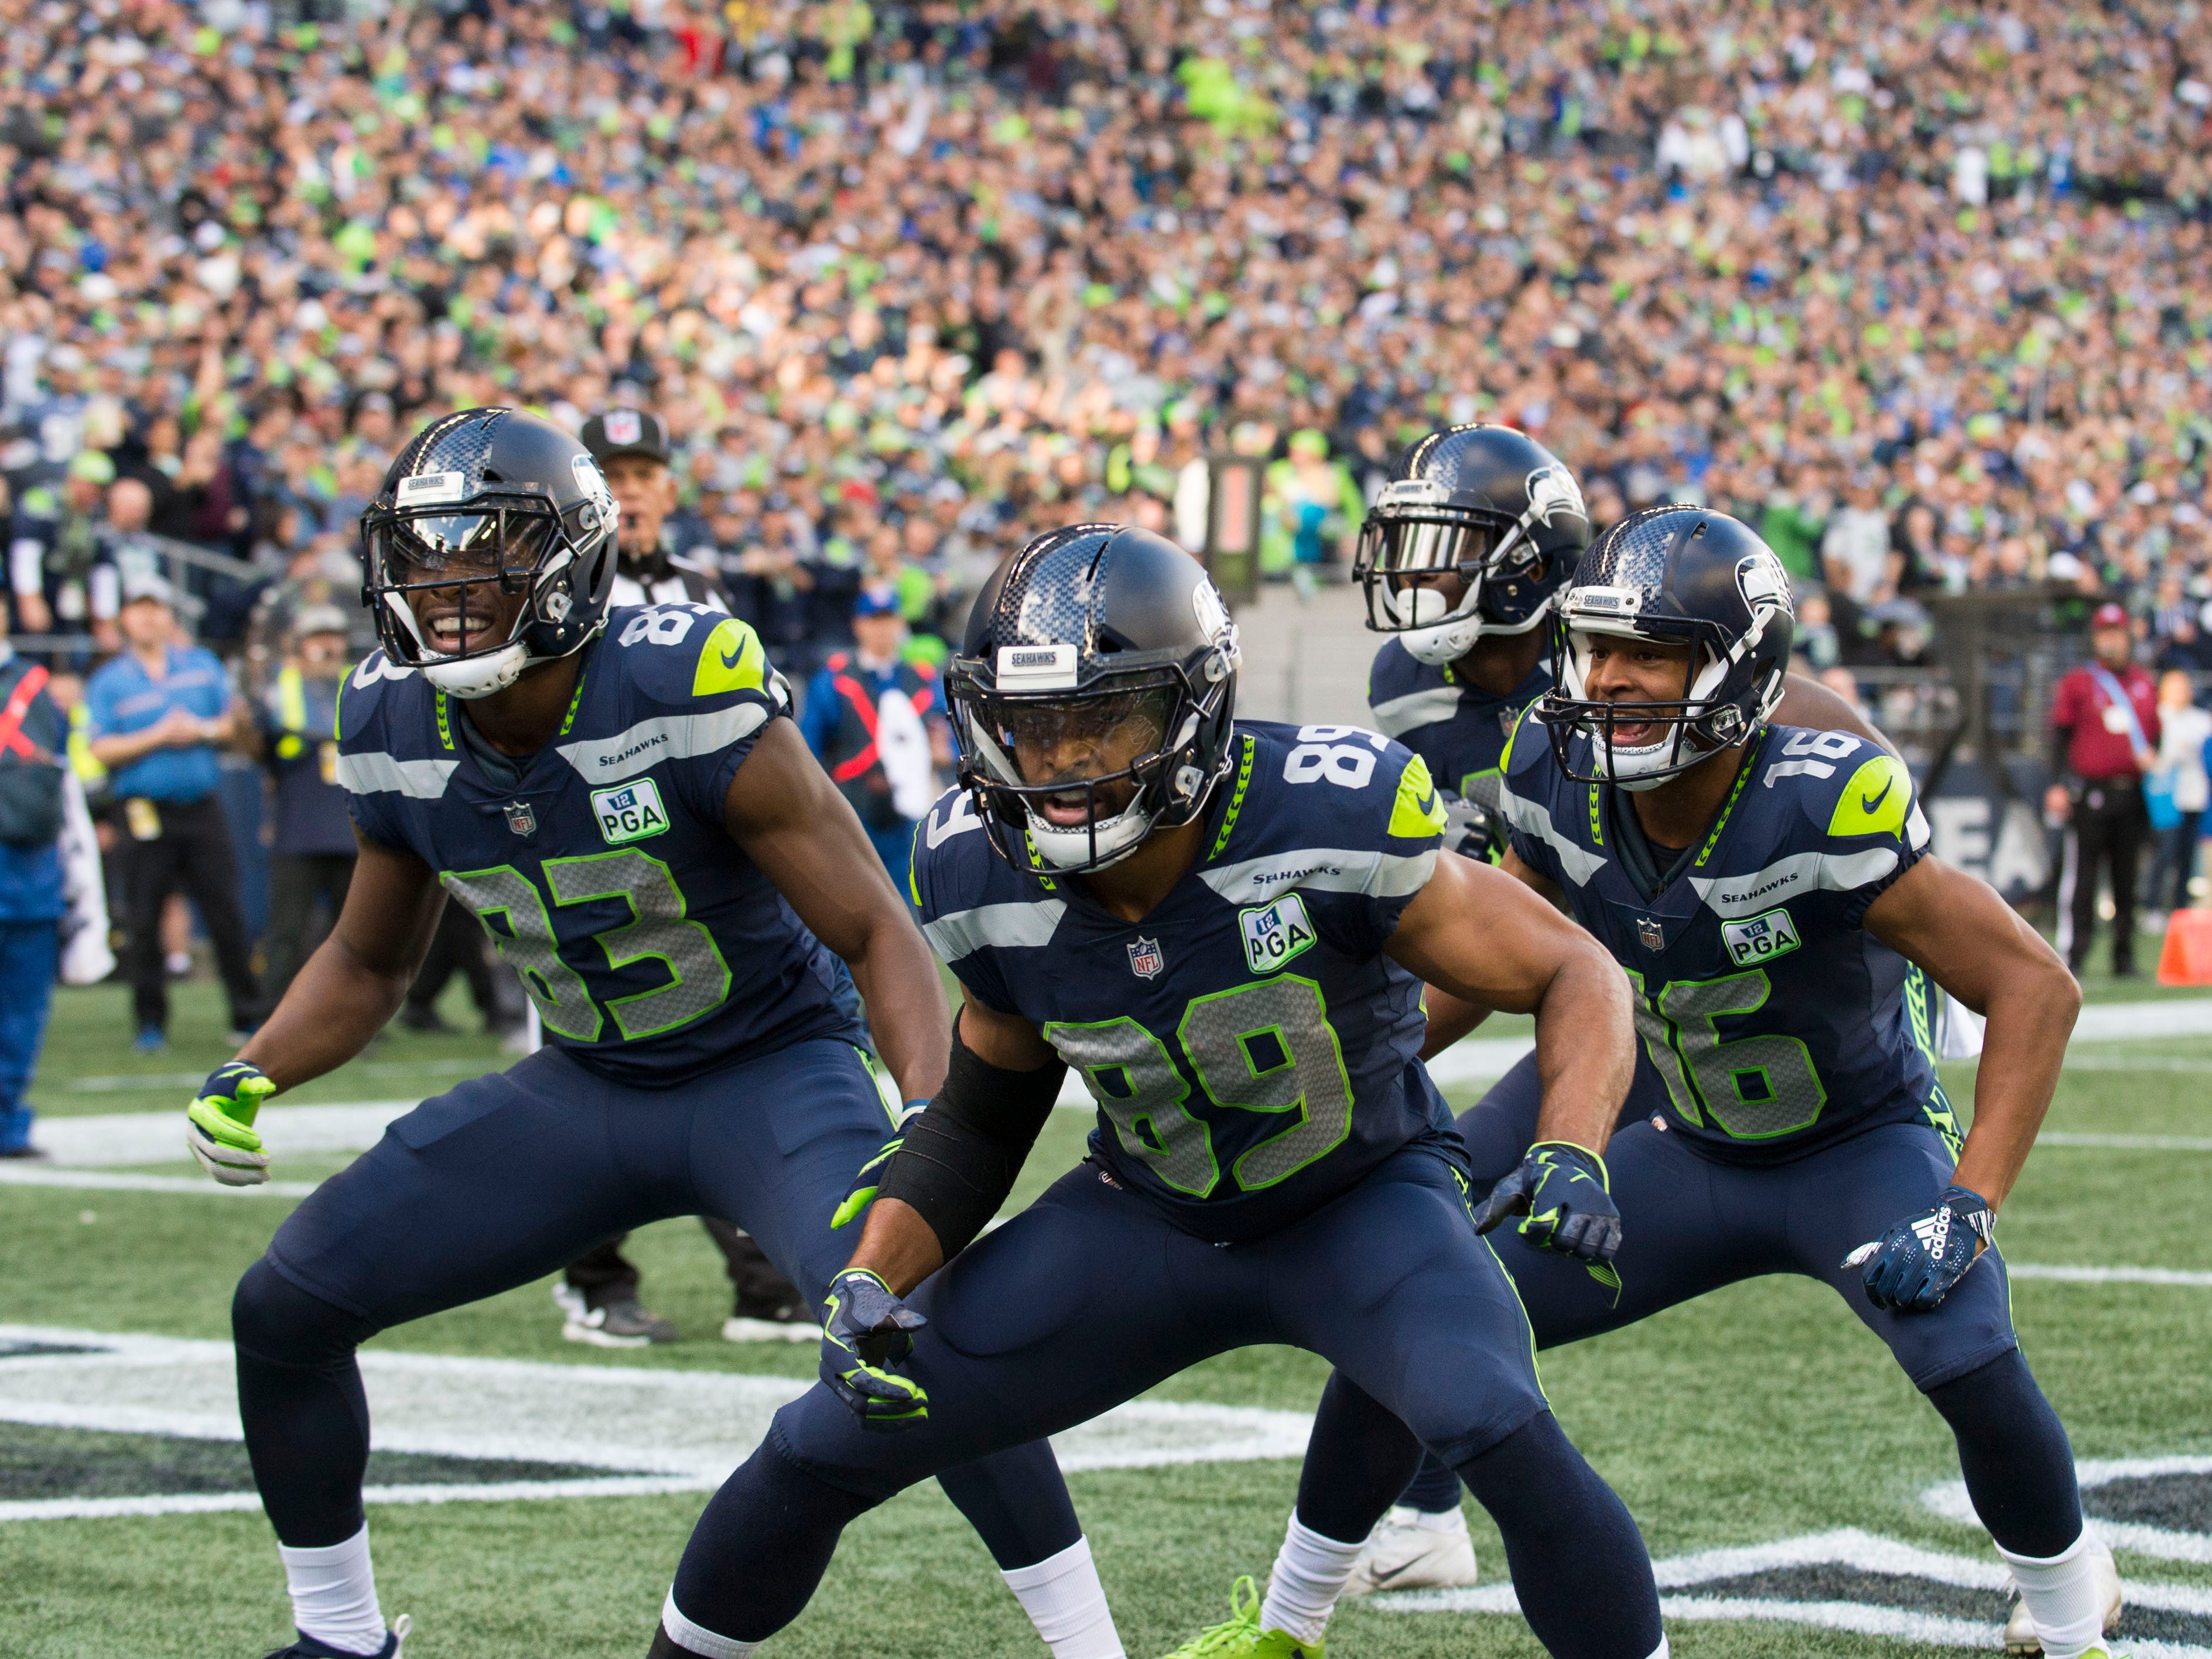 After a first-quarter touchdown, the Seattle Seahawks dance. Wide receivers David Moore (83), Doug Baldwin (89), Tyler Lockett (16) and Jaron Brown (18).